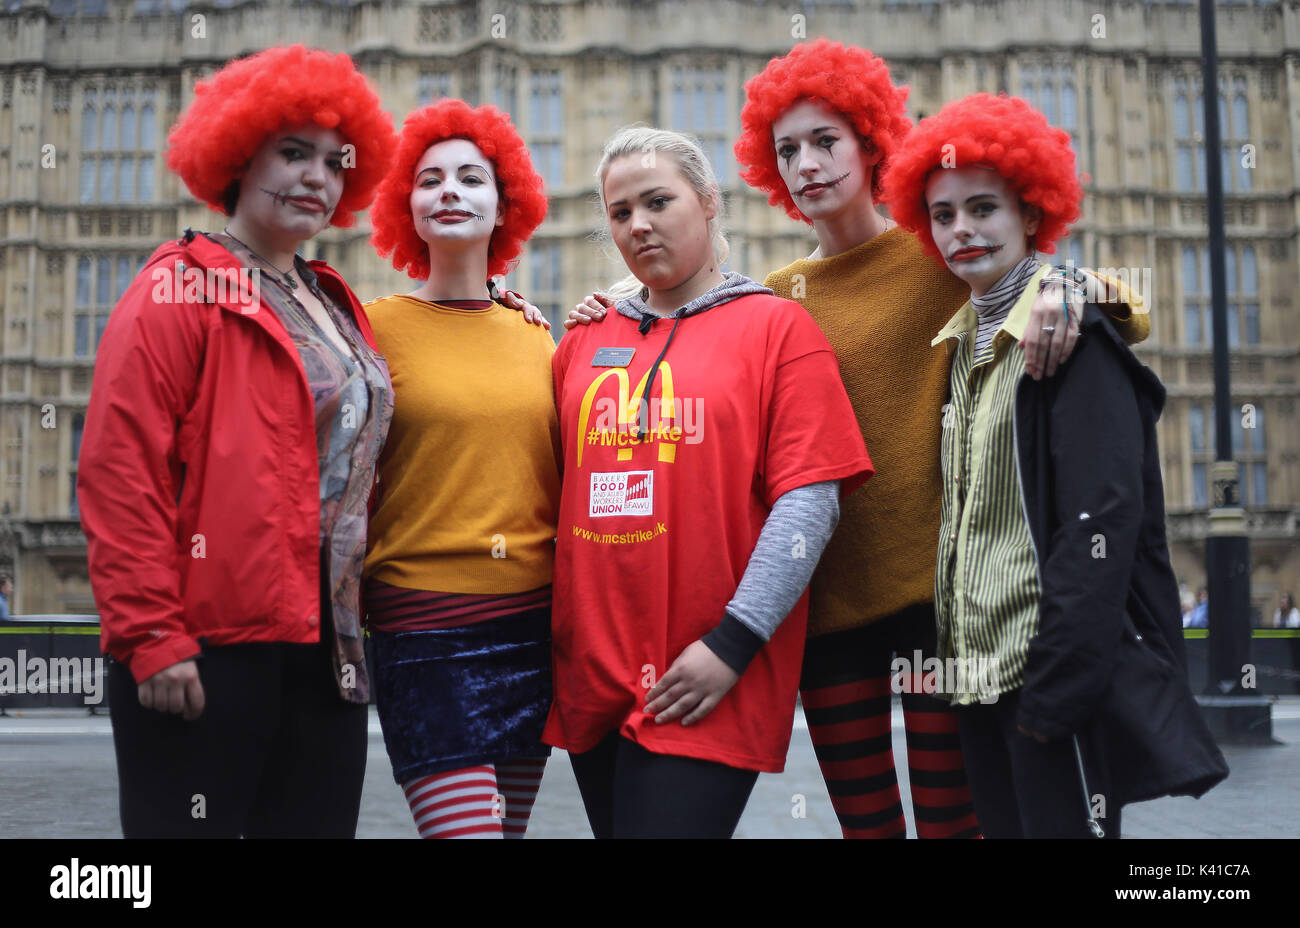 Jess Bower (centre) who is on strike from the McDonald's restaurant in Crayford, SE London, with supporters during a rally at Old Palace Yard, London, after staff voted overwhelmingly in favour of industrial action, amid concerns over working conditions and the use of zero-hour contracts. - Stock Image